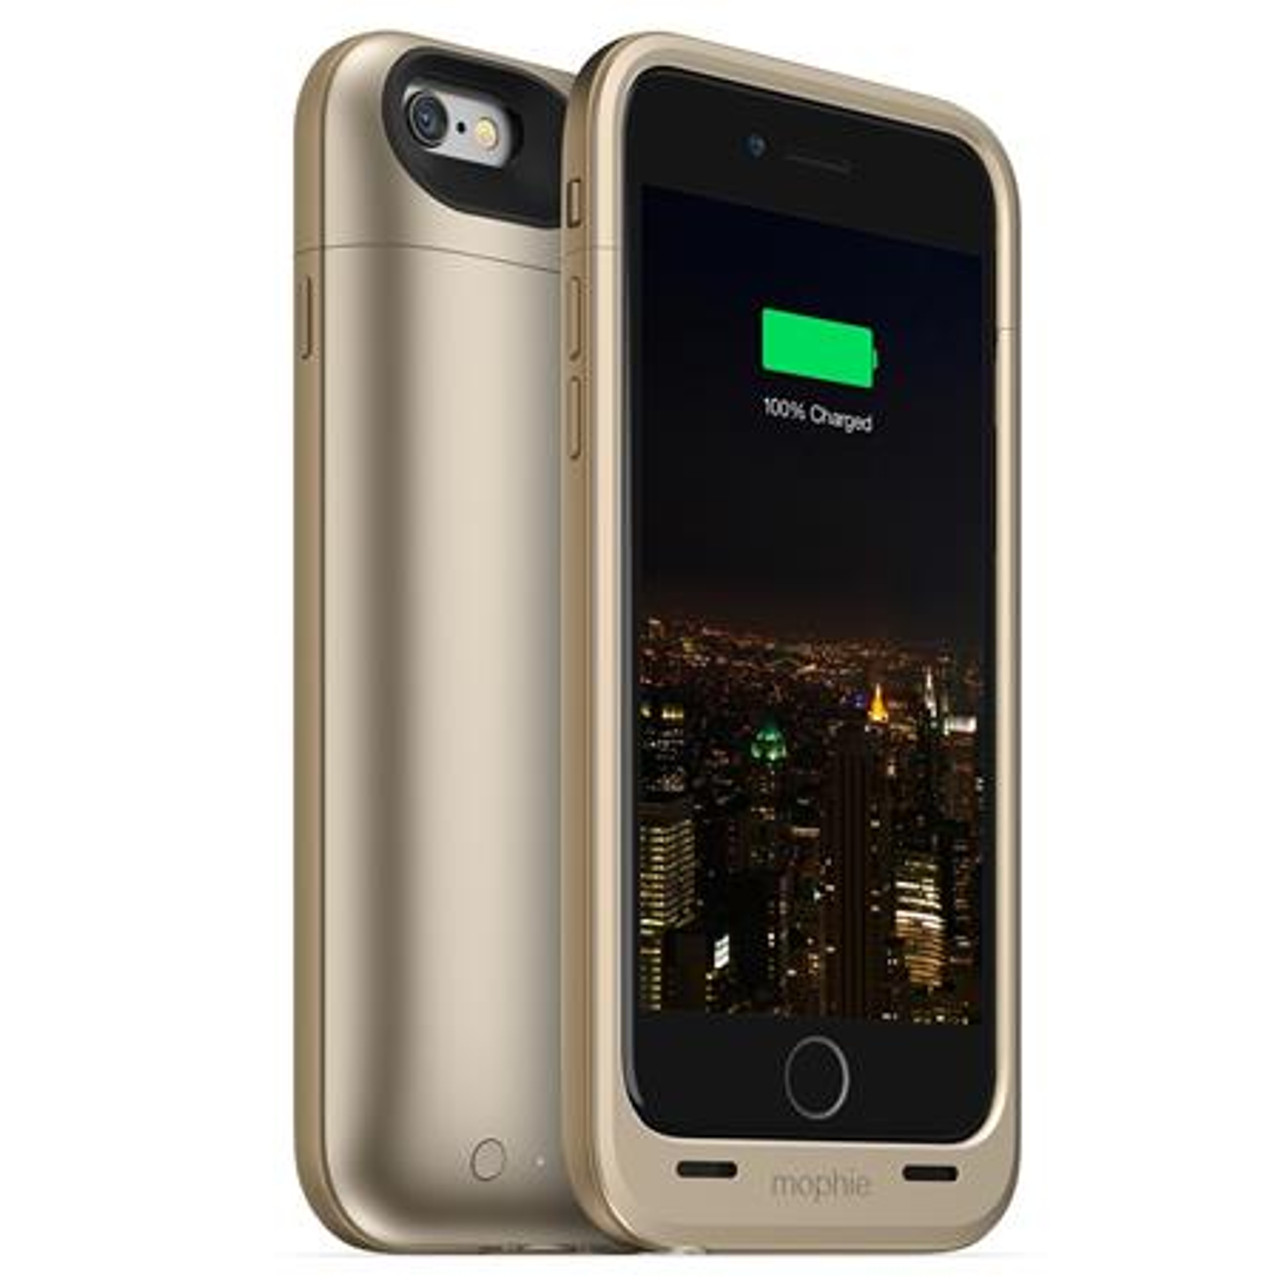 Mophie Juice Pack Plus Battery Case Iphone 6 6s Gold Esurebuy Com Mophie juice pack reserve iphone 6/6s 1,840mah, black. mophie juice pack plus battery case iphone 6 6s gold